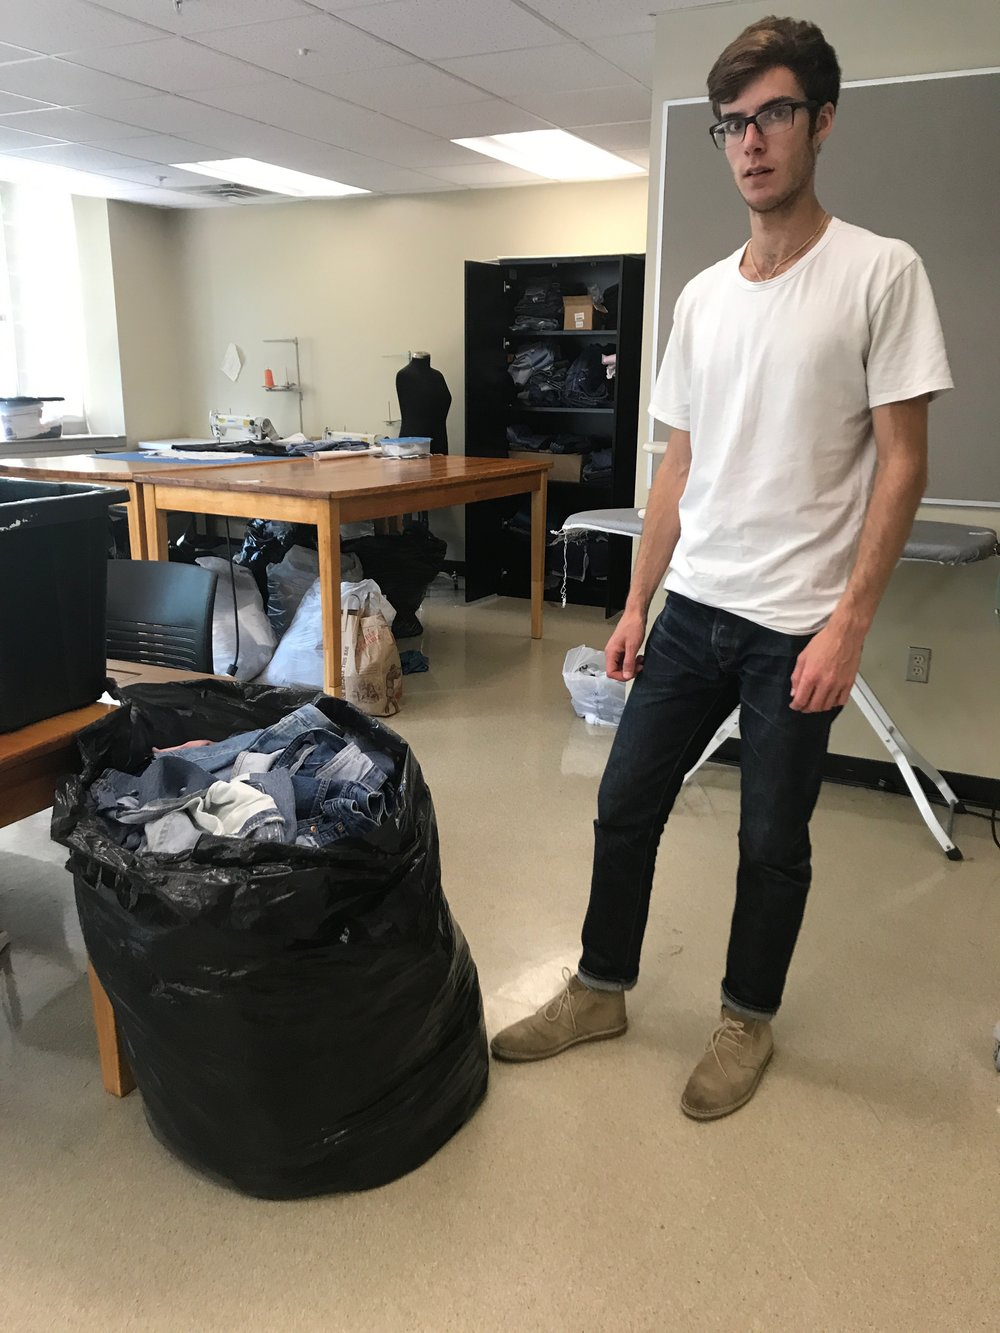 Pictured: Greg, coming in at 6'1'' vs one very large bag of scraps.